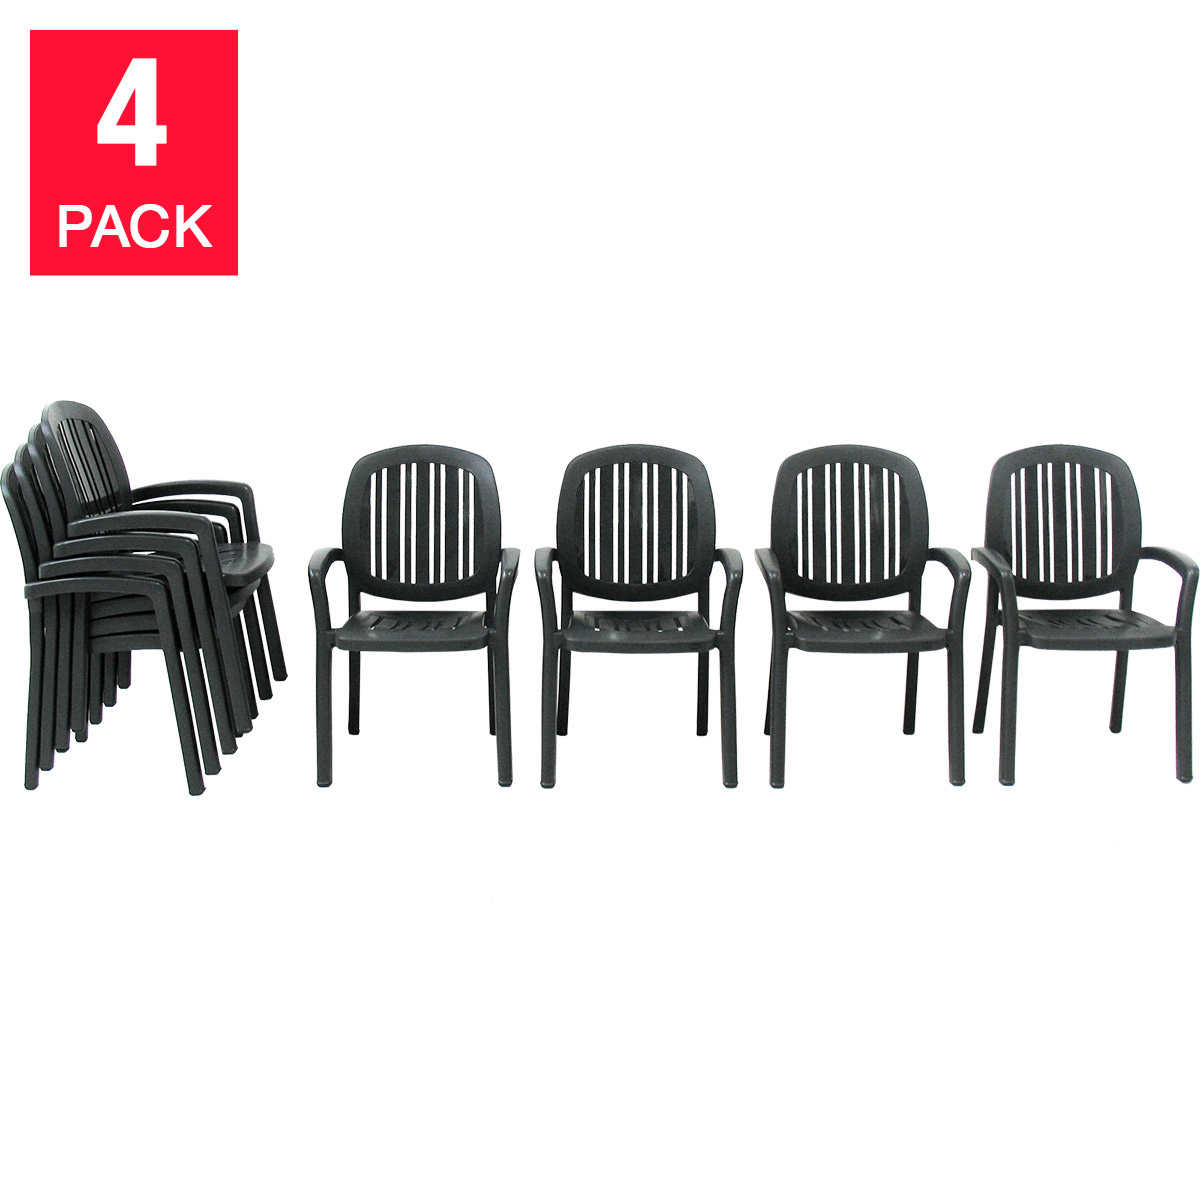 Nardi® Ponza Resin Stackable Armchairs, 4-pack